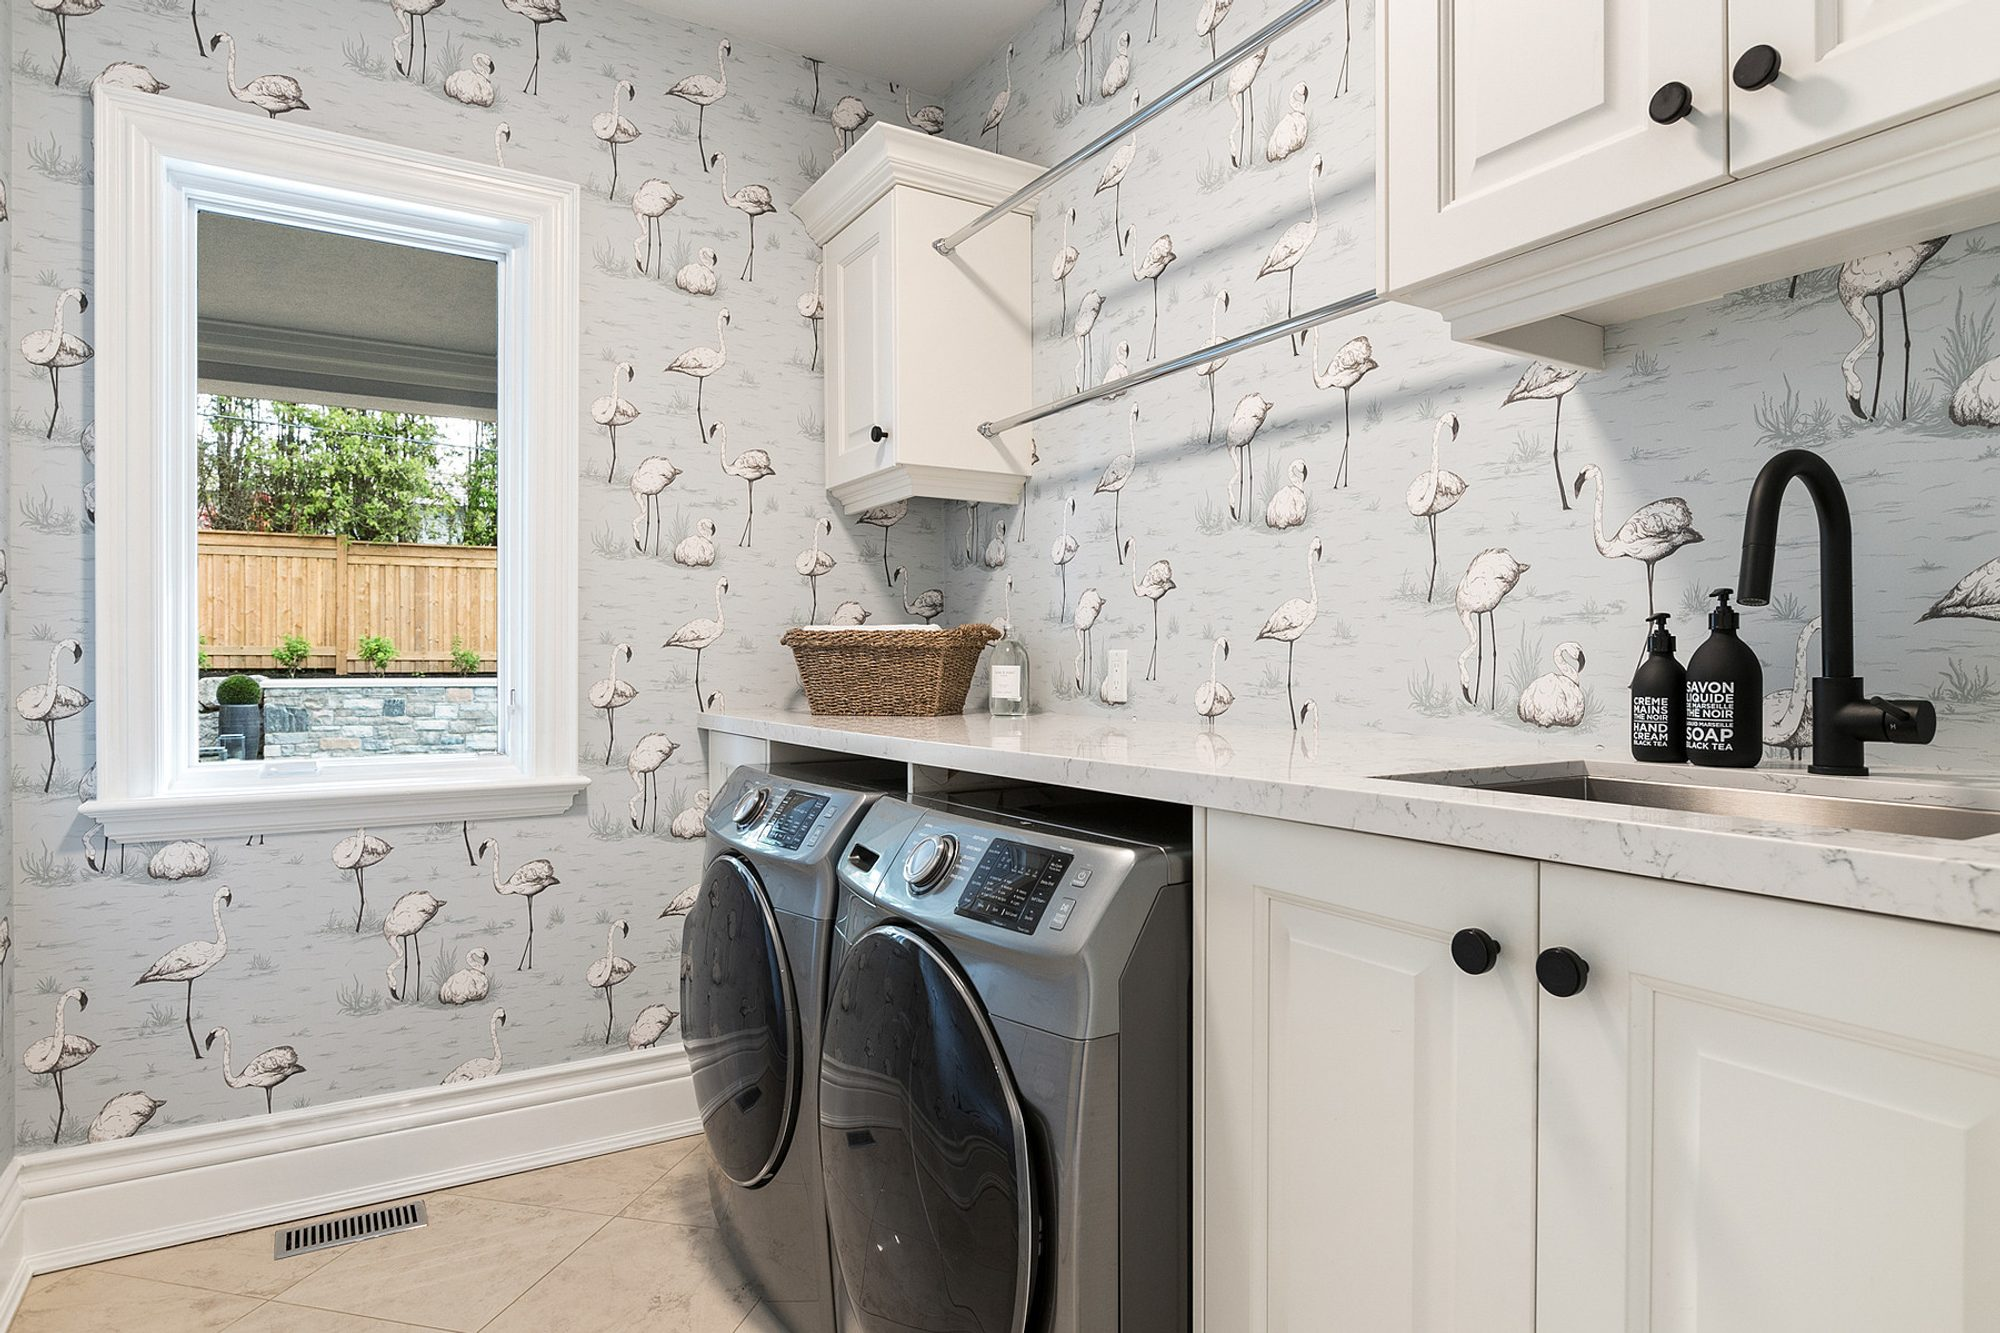 White laundry room cabinetry with black hardware and matching black faucet.